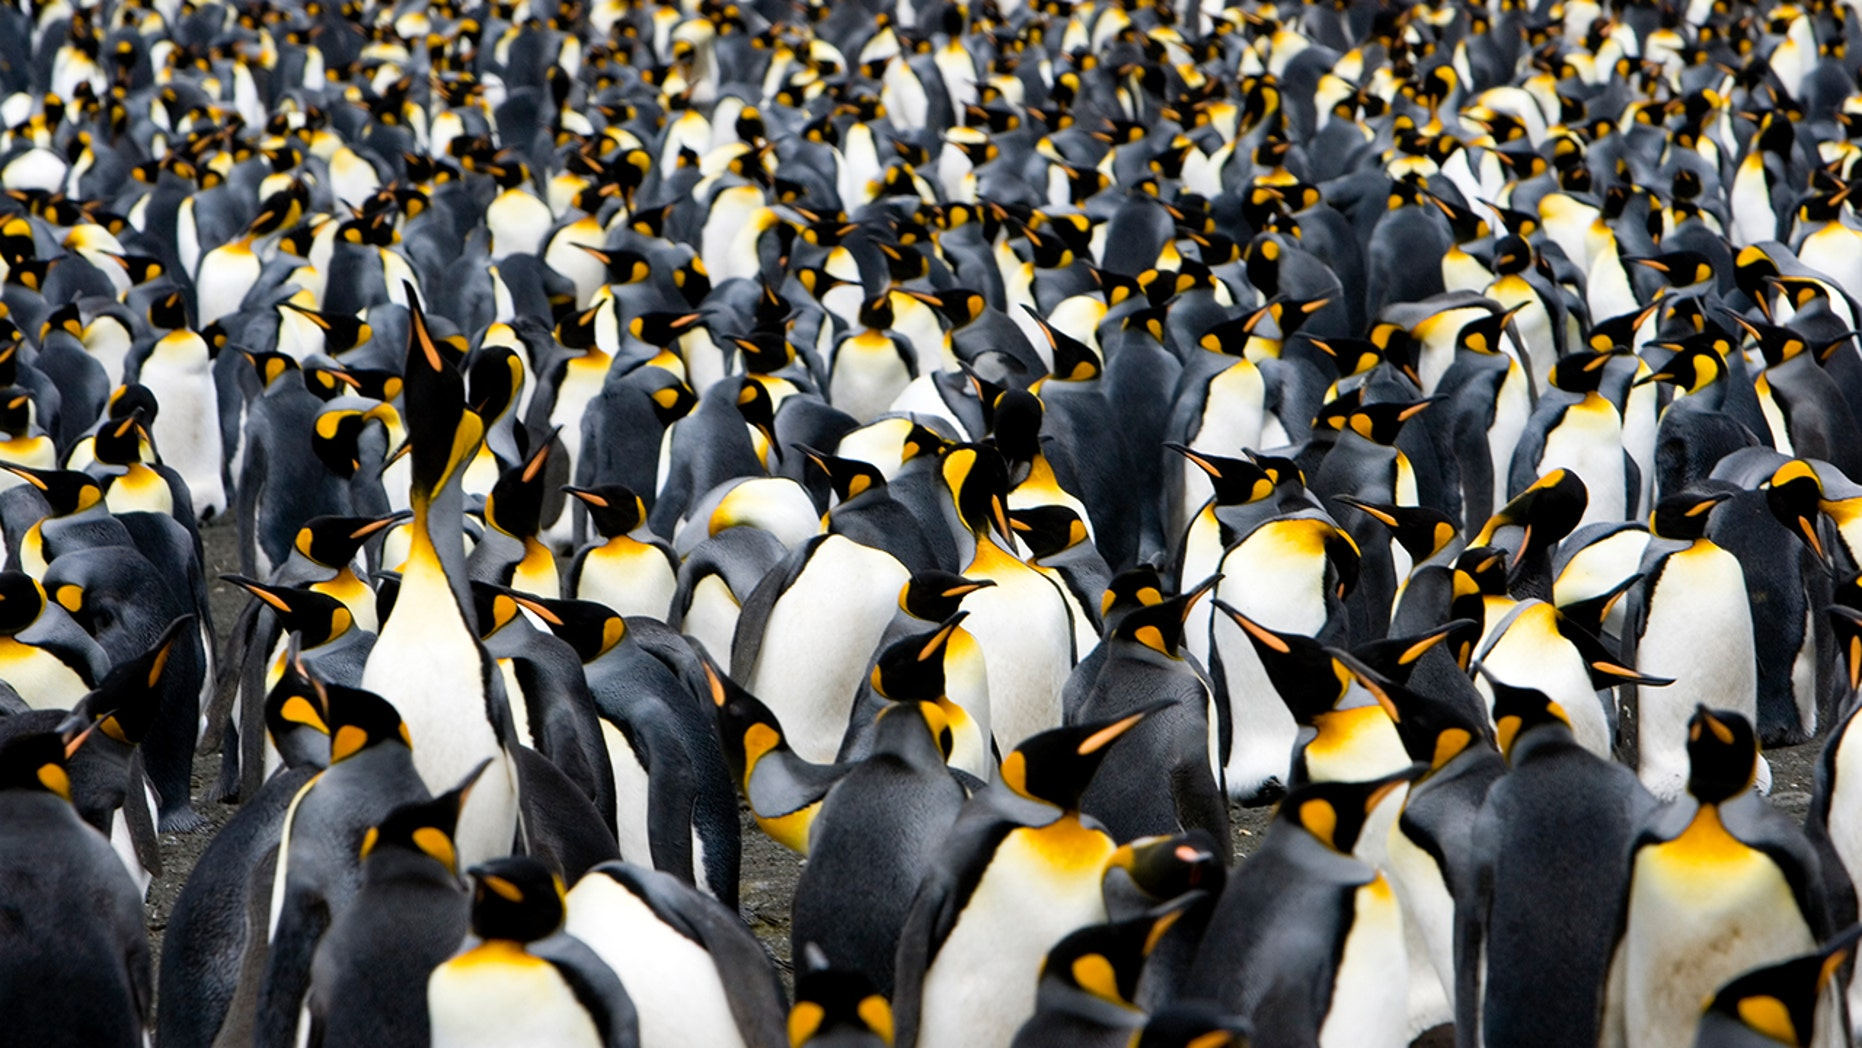 972 students dressed like penguins and broke the world record